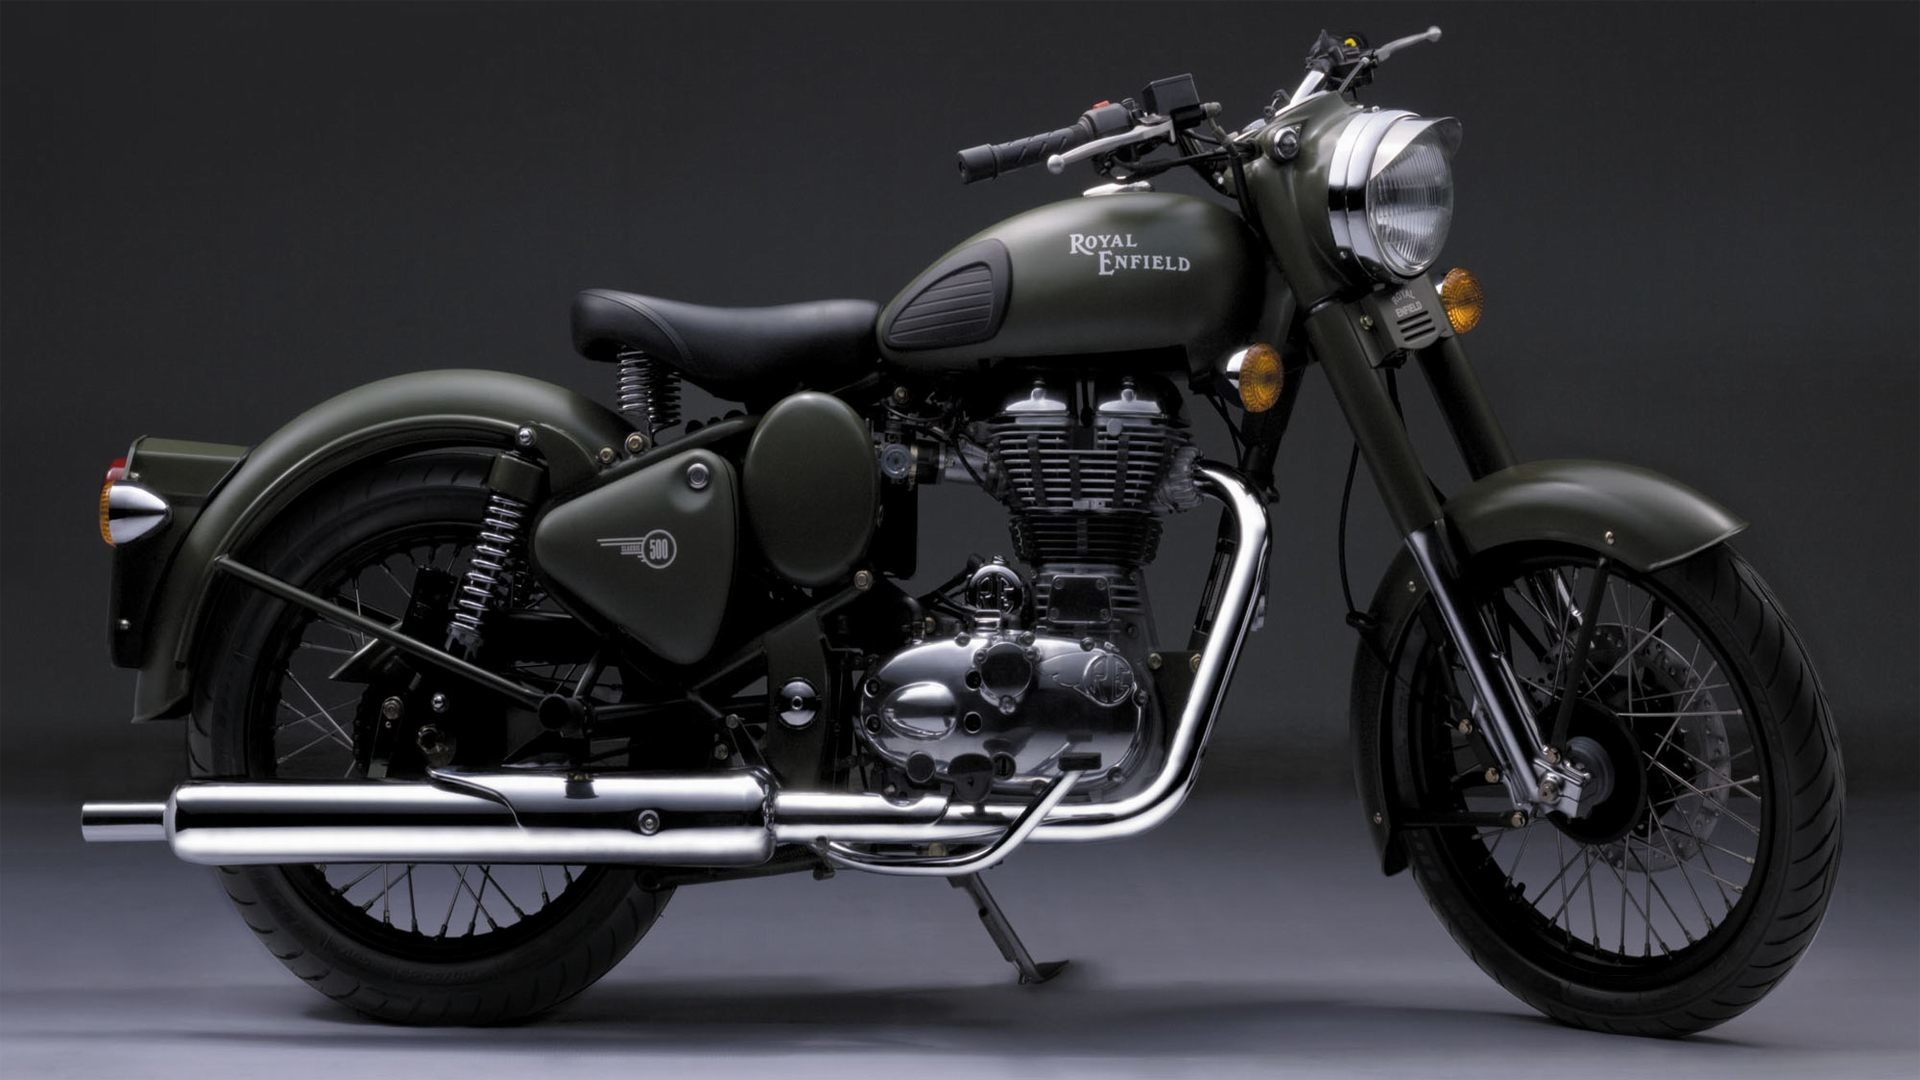 Bullet 350 Hd Wallpaper Royal Enfield Wallpapers 67 Images